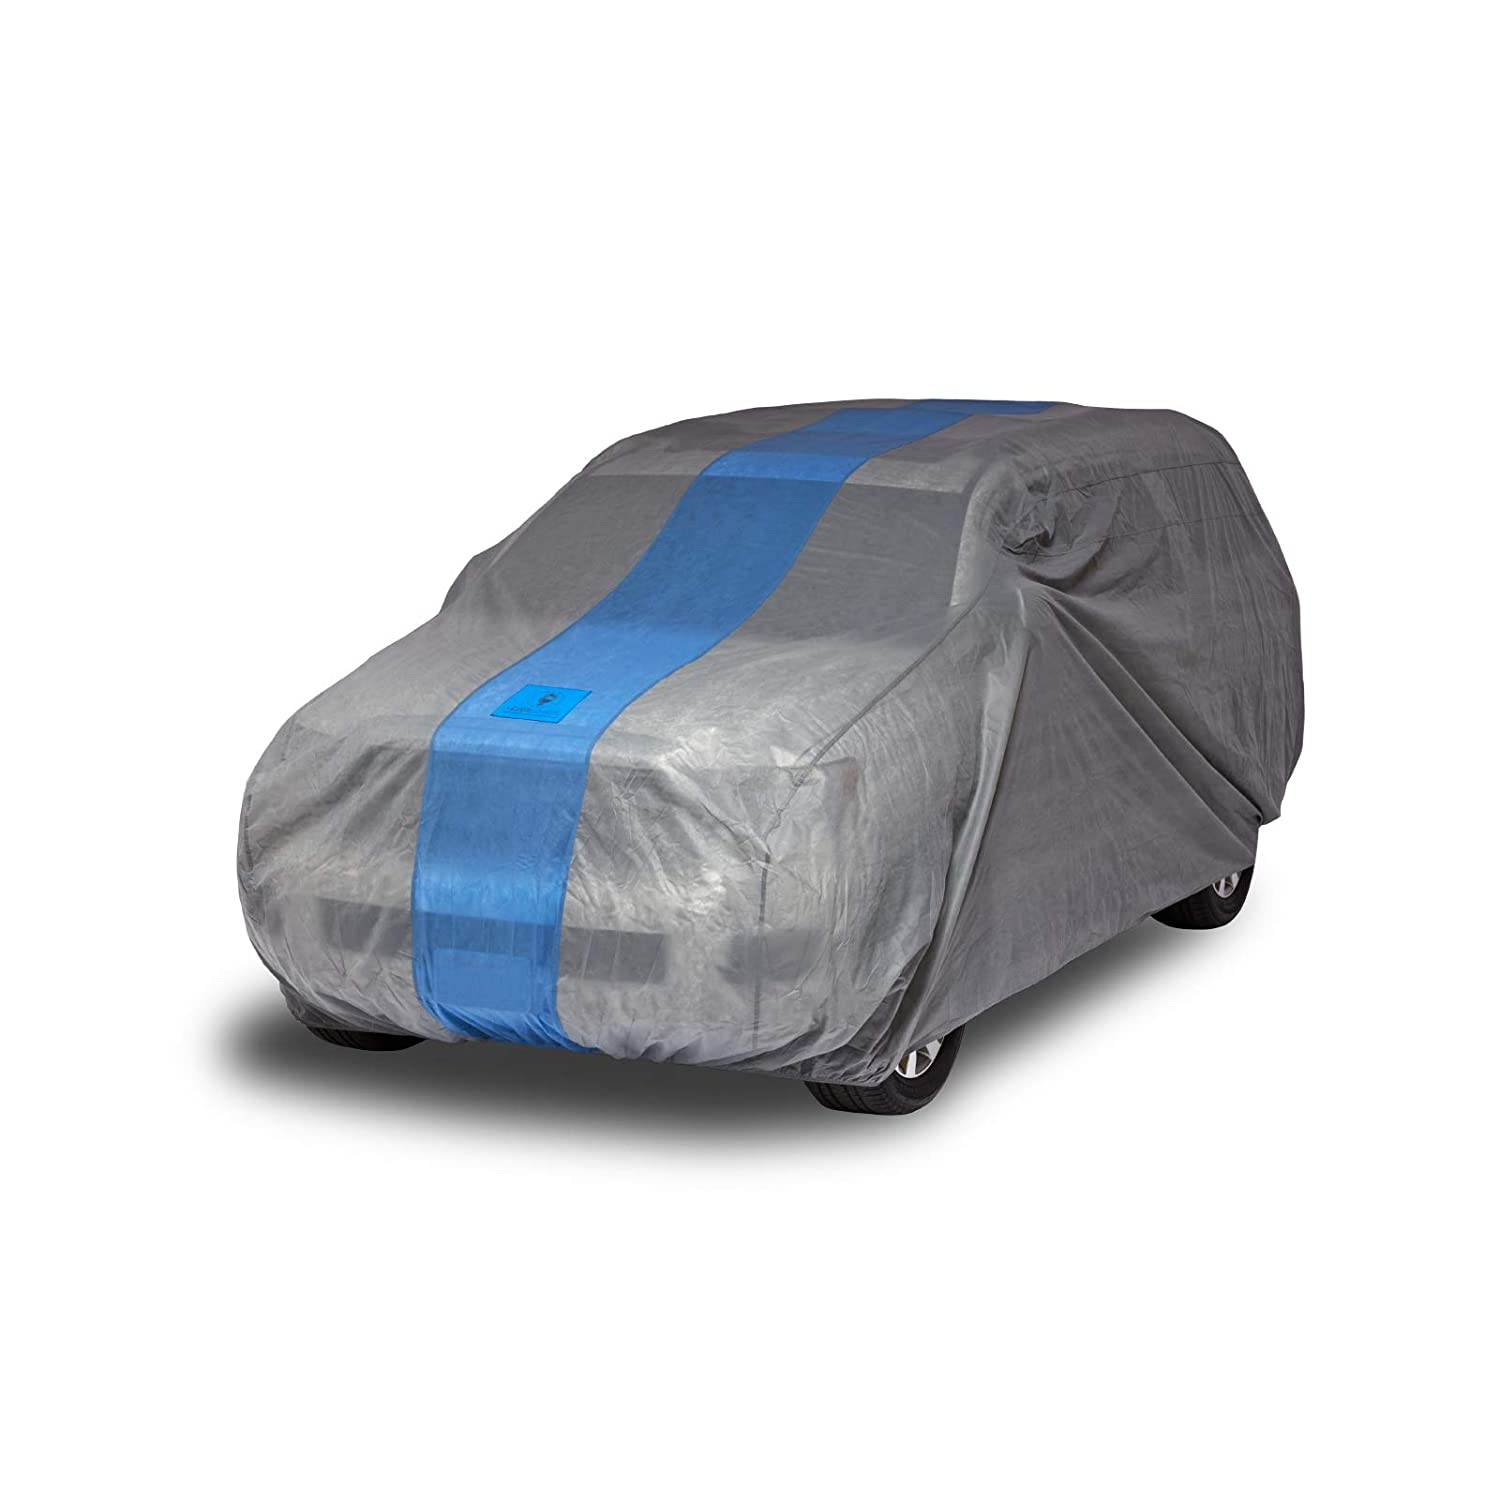 Limited 2 Year Warranty Duck Covers Defender SUV//Truck Cover All Weather Protection Fits SUVs or Trucks with Shell or Bed Cap up to 17 ft 5 in.